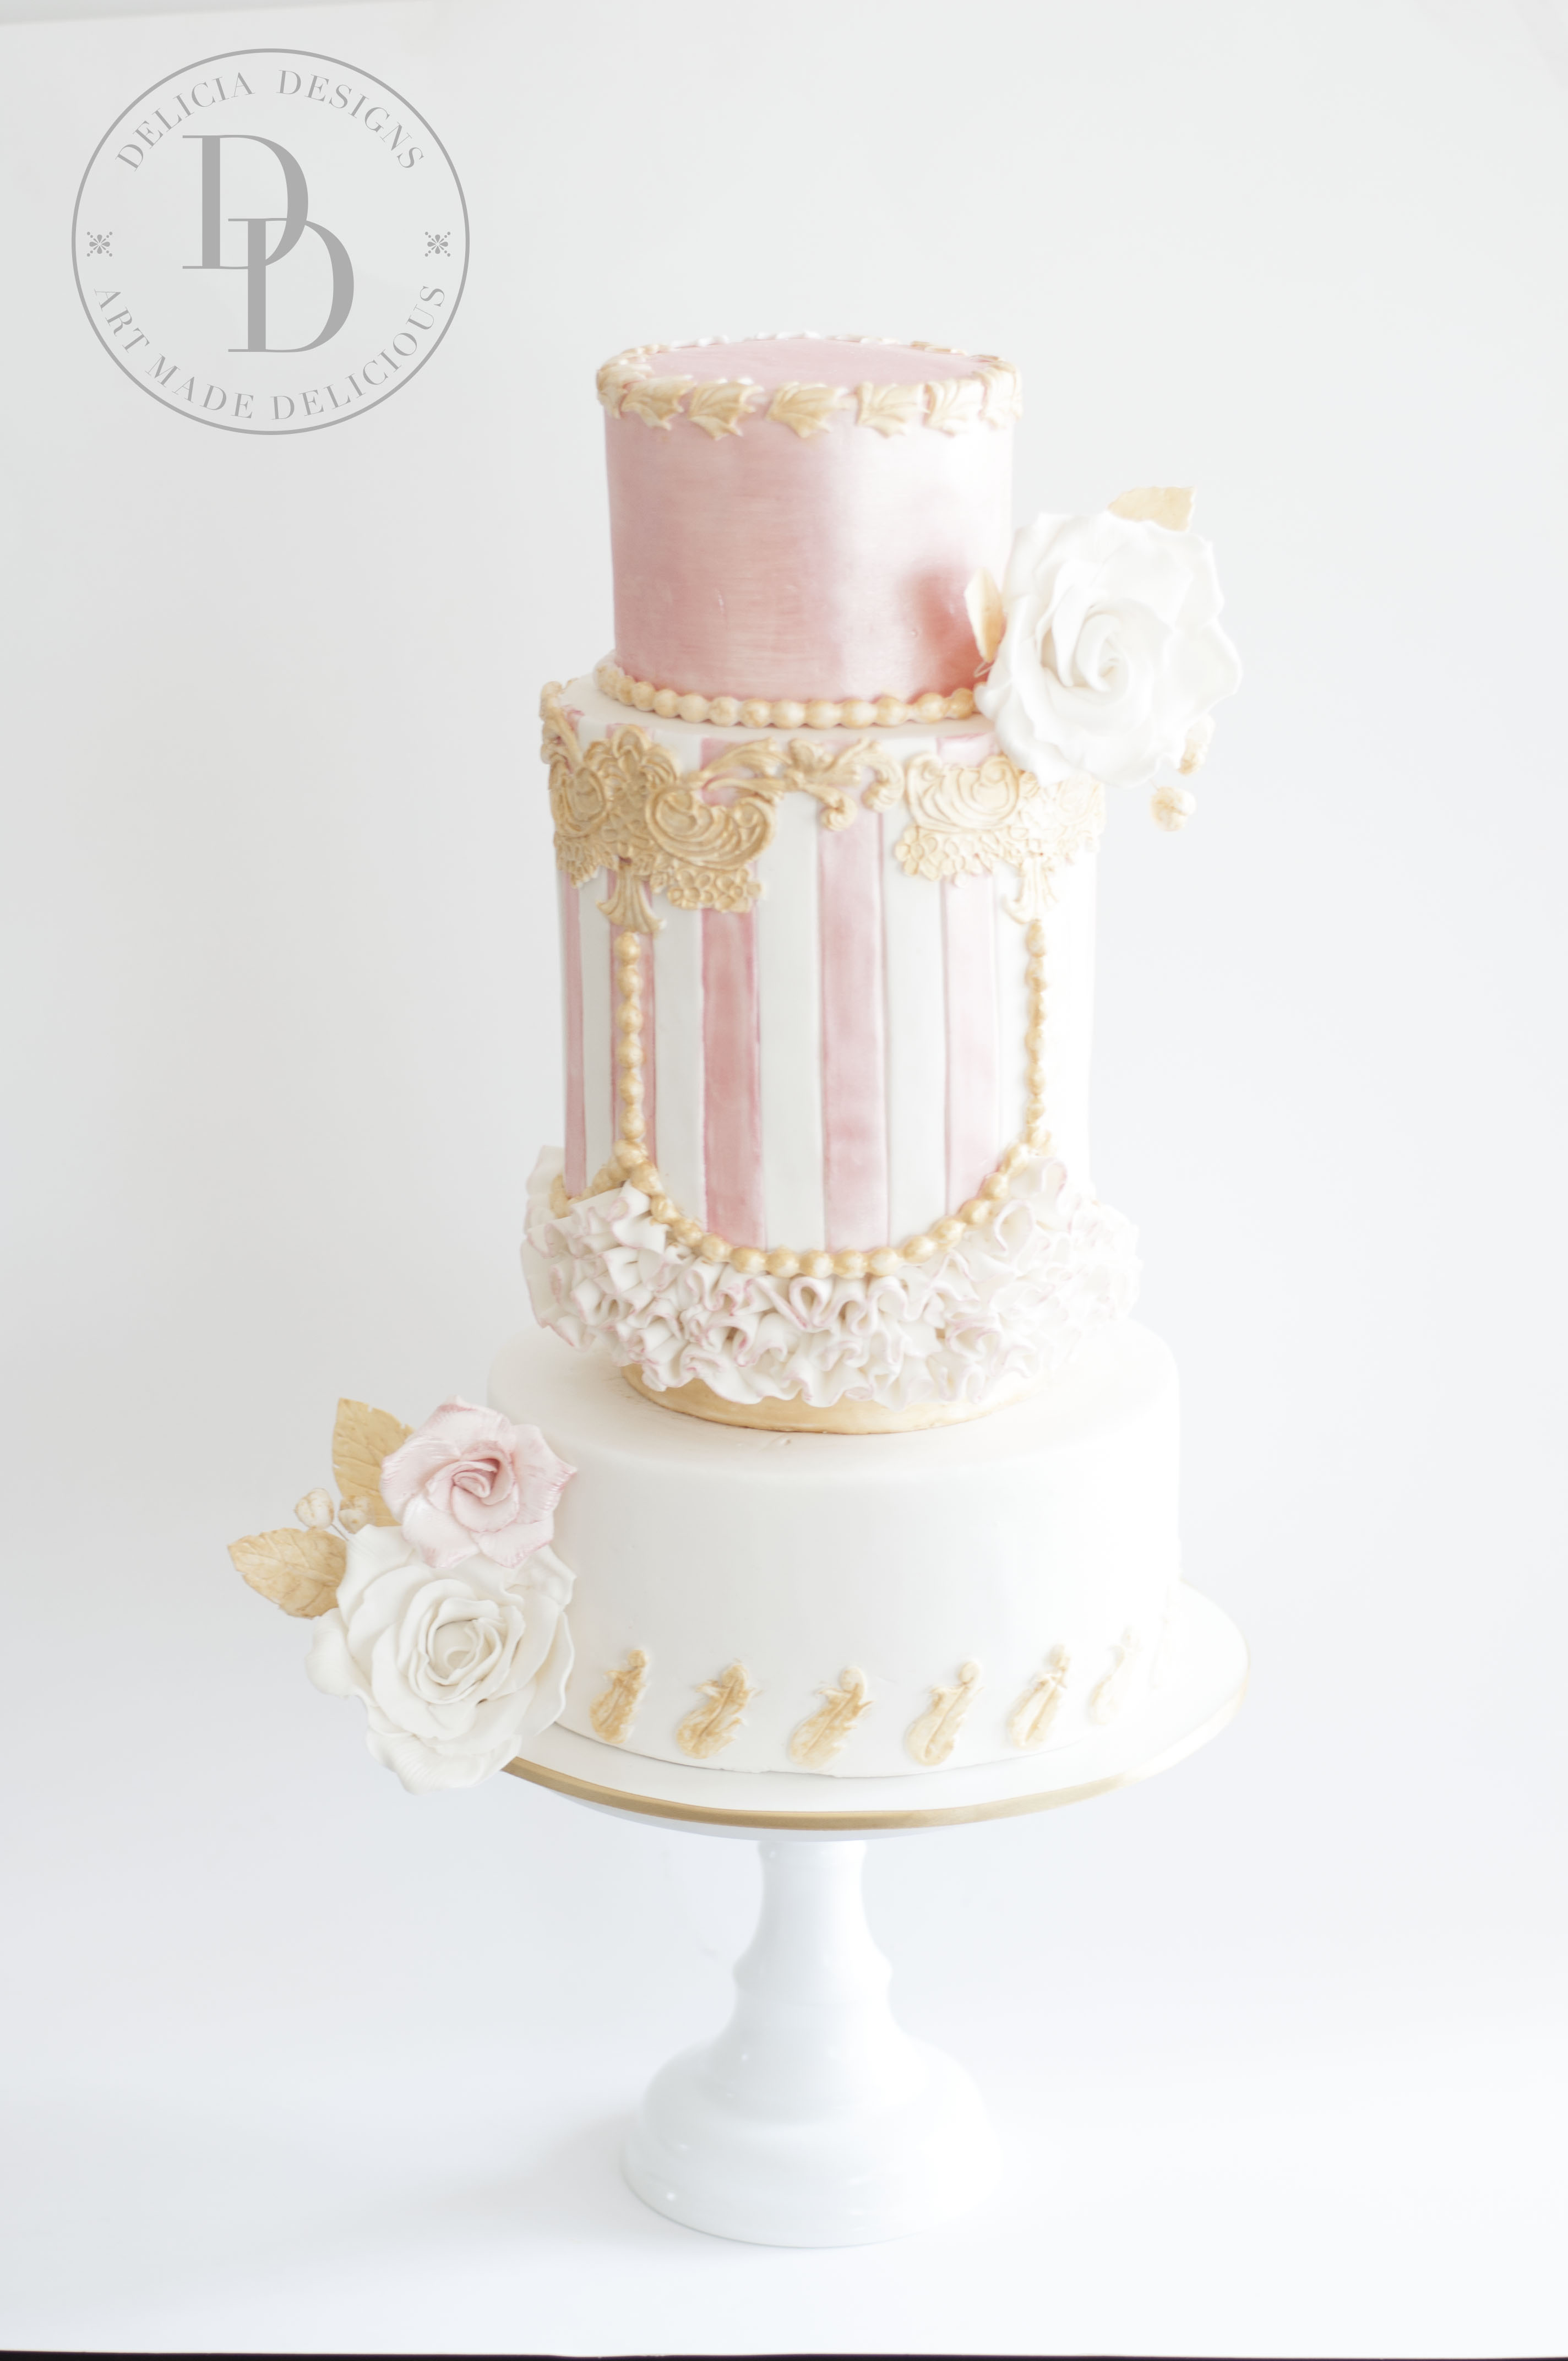 Rose gold and baby pink striped fondant cake